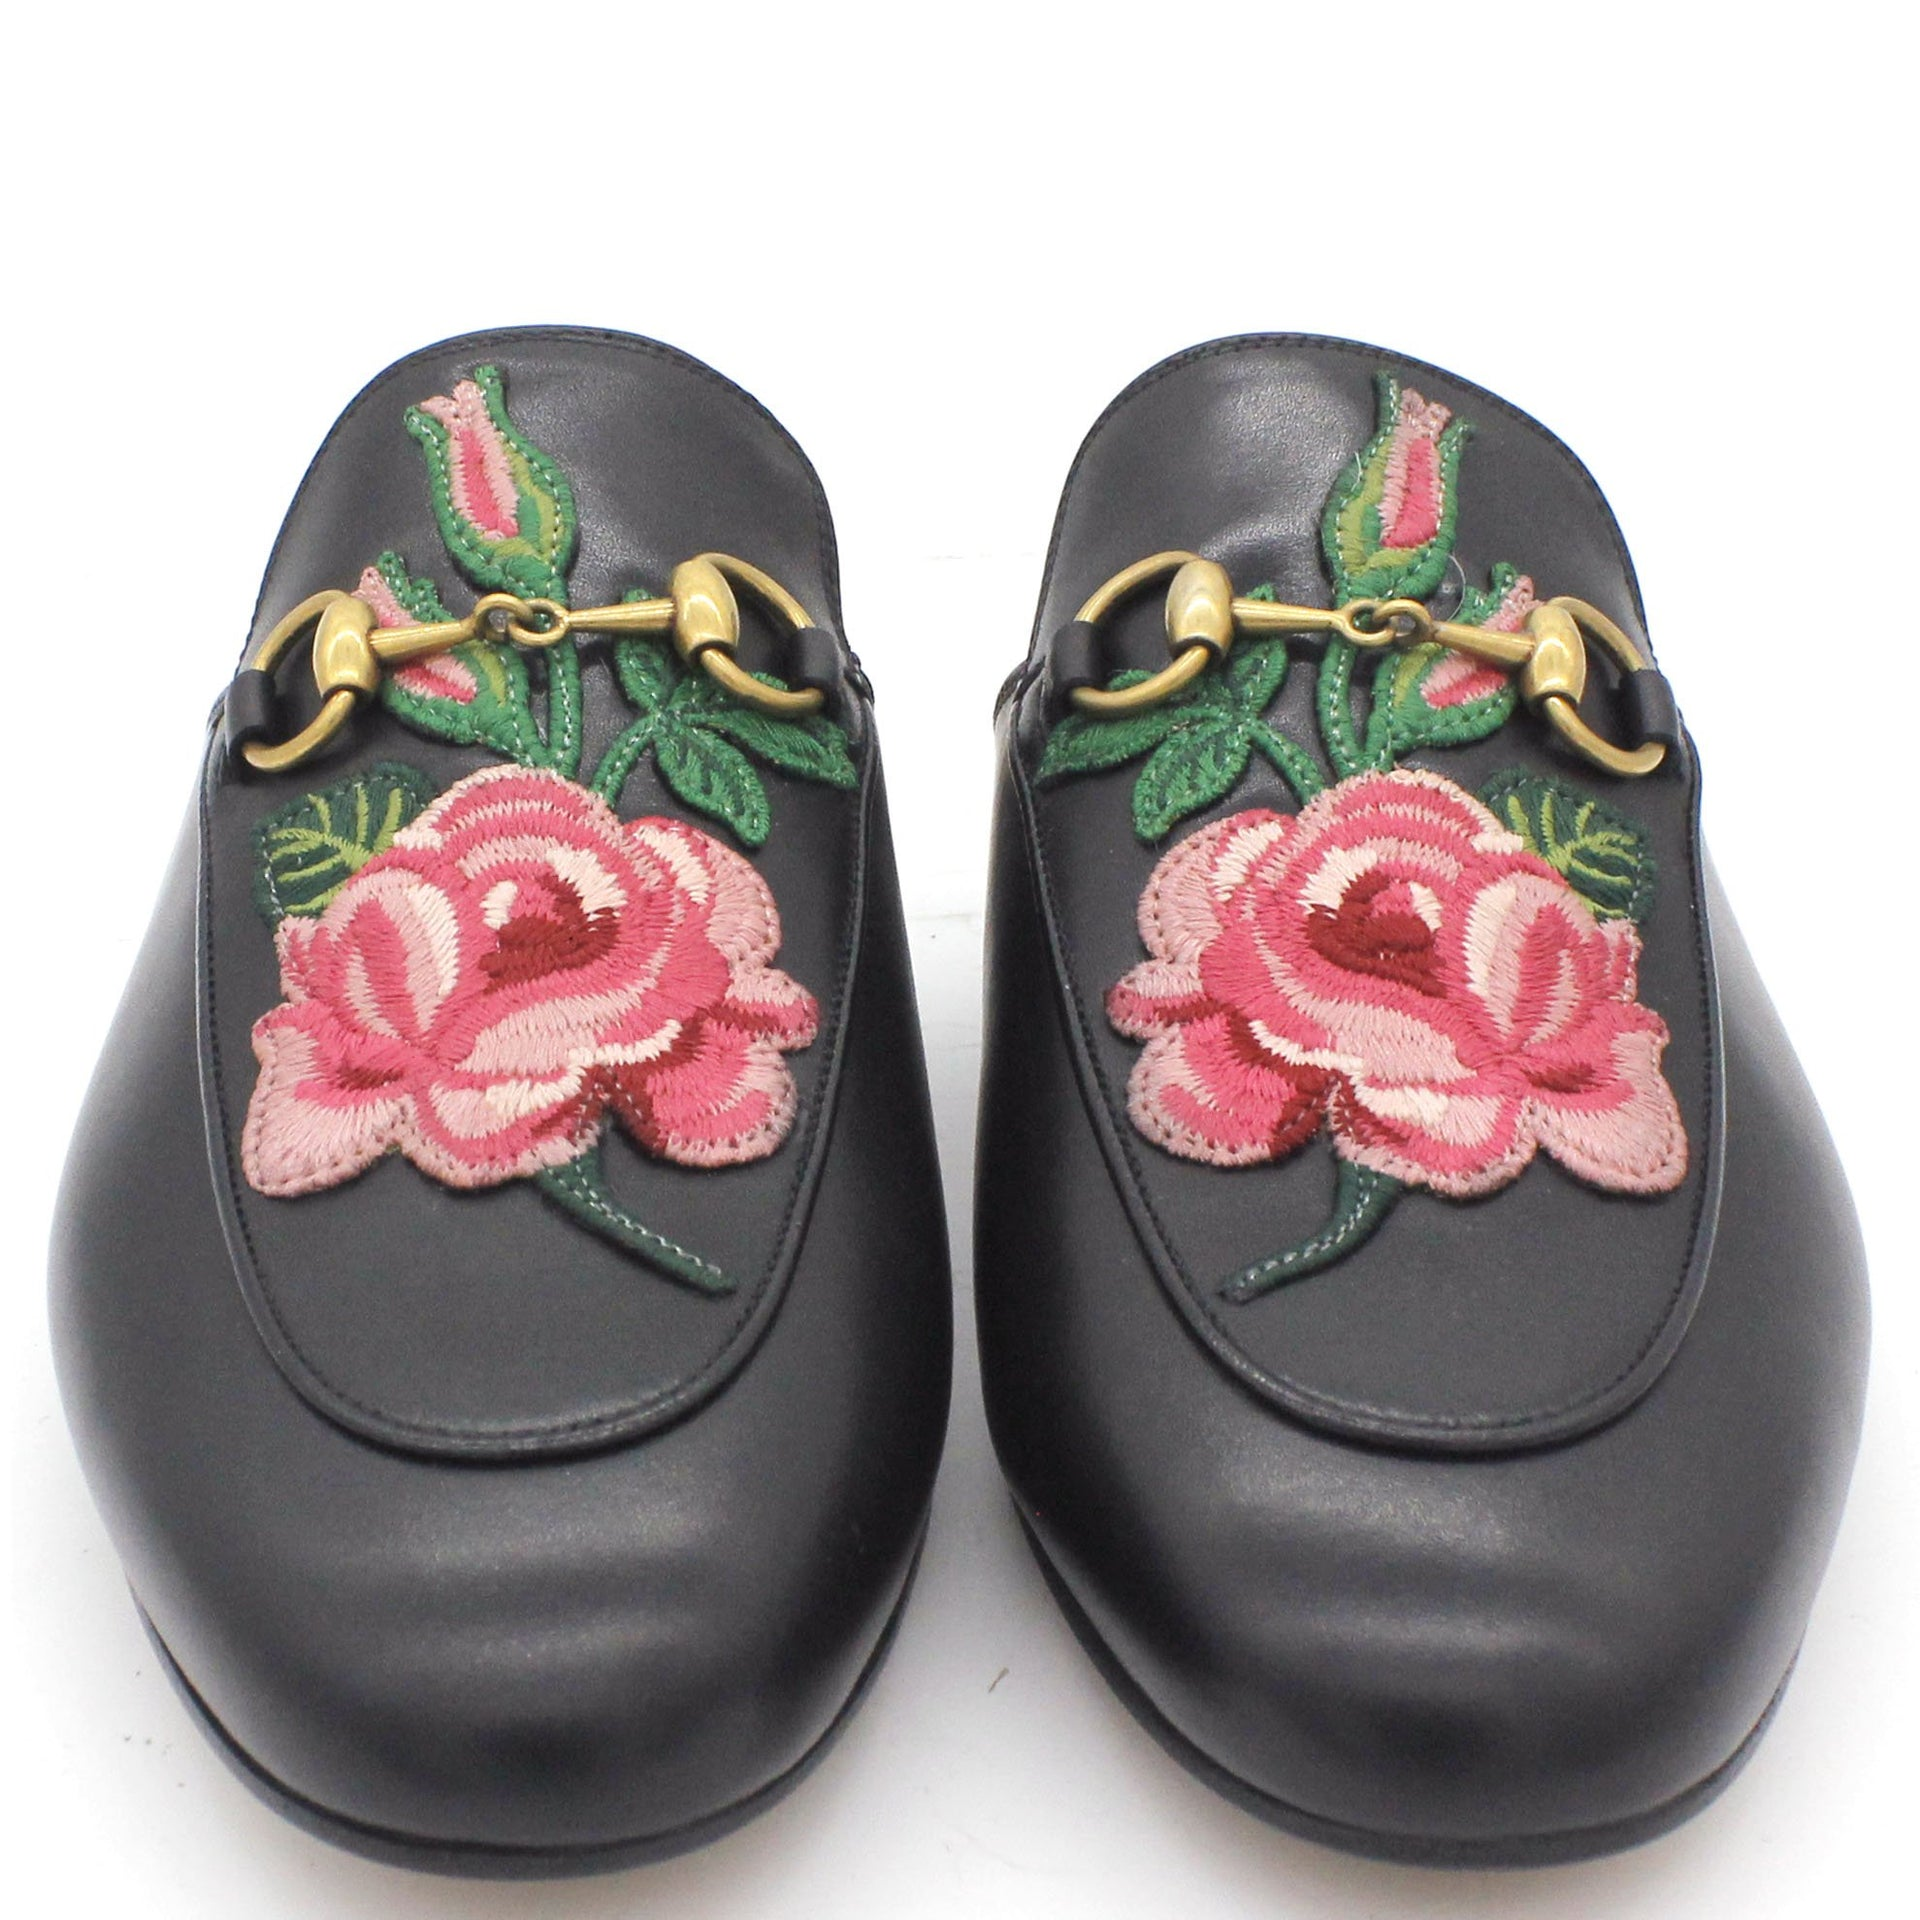 Princetown appliquéd leather slippers